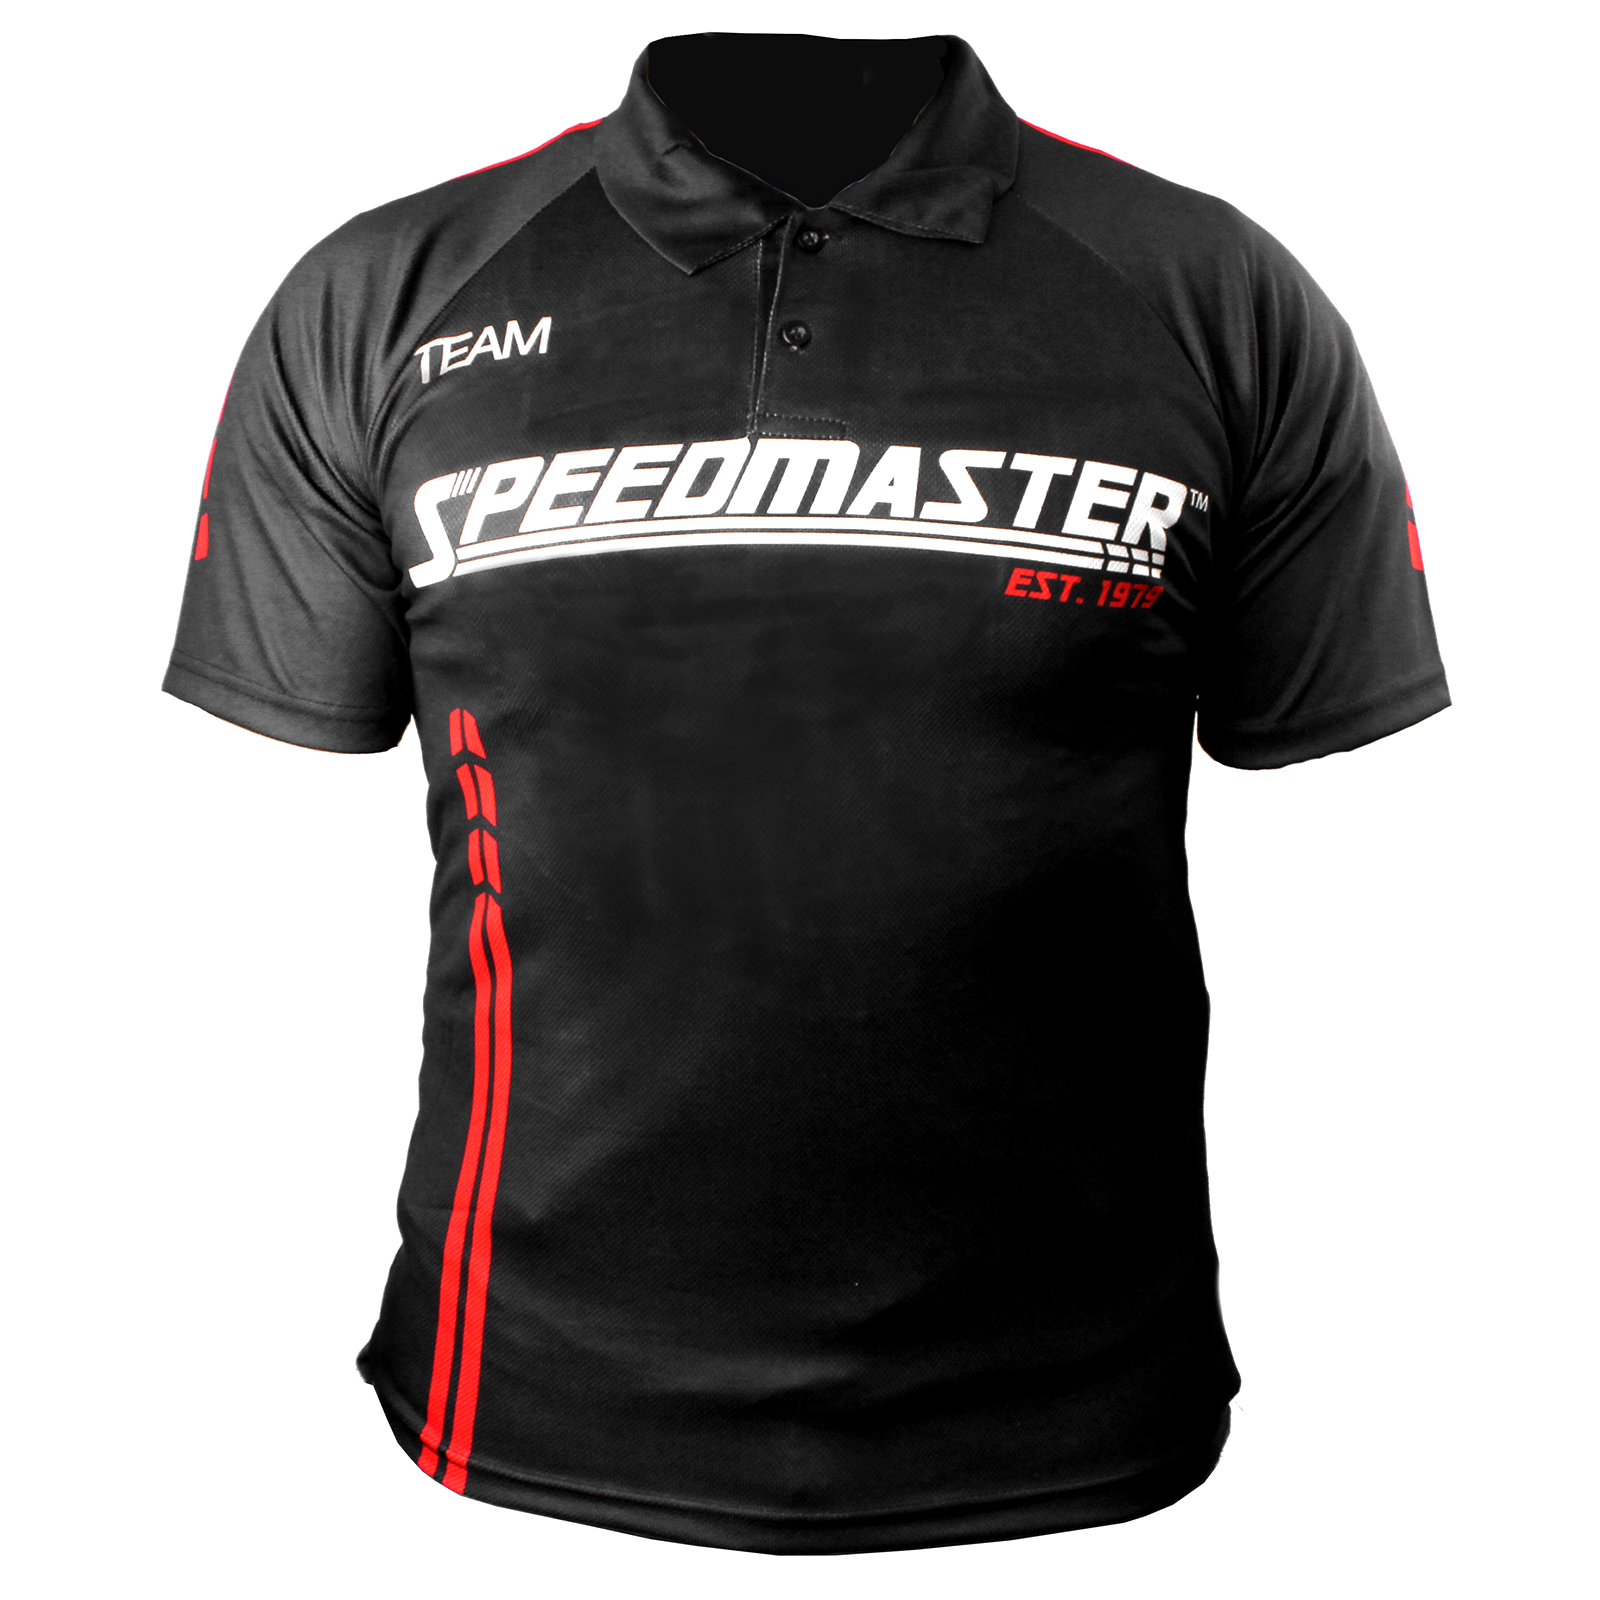 Speedmaster Team Jersey / Polo Shirt - XXXXX Large 5XL